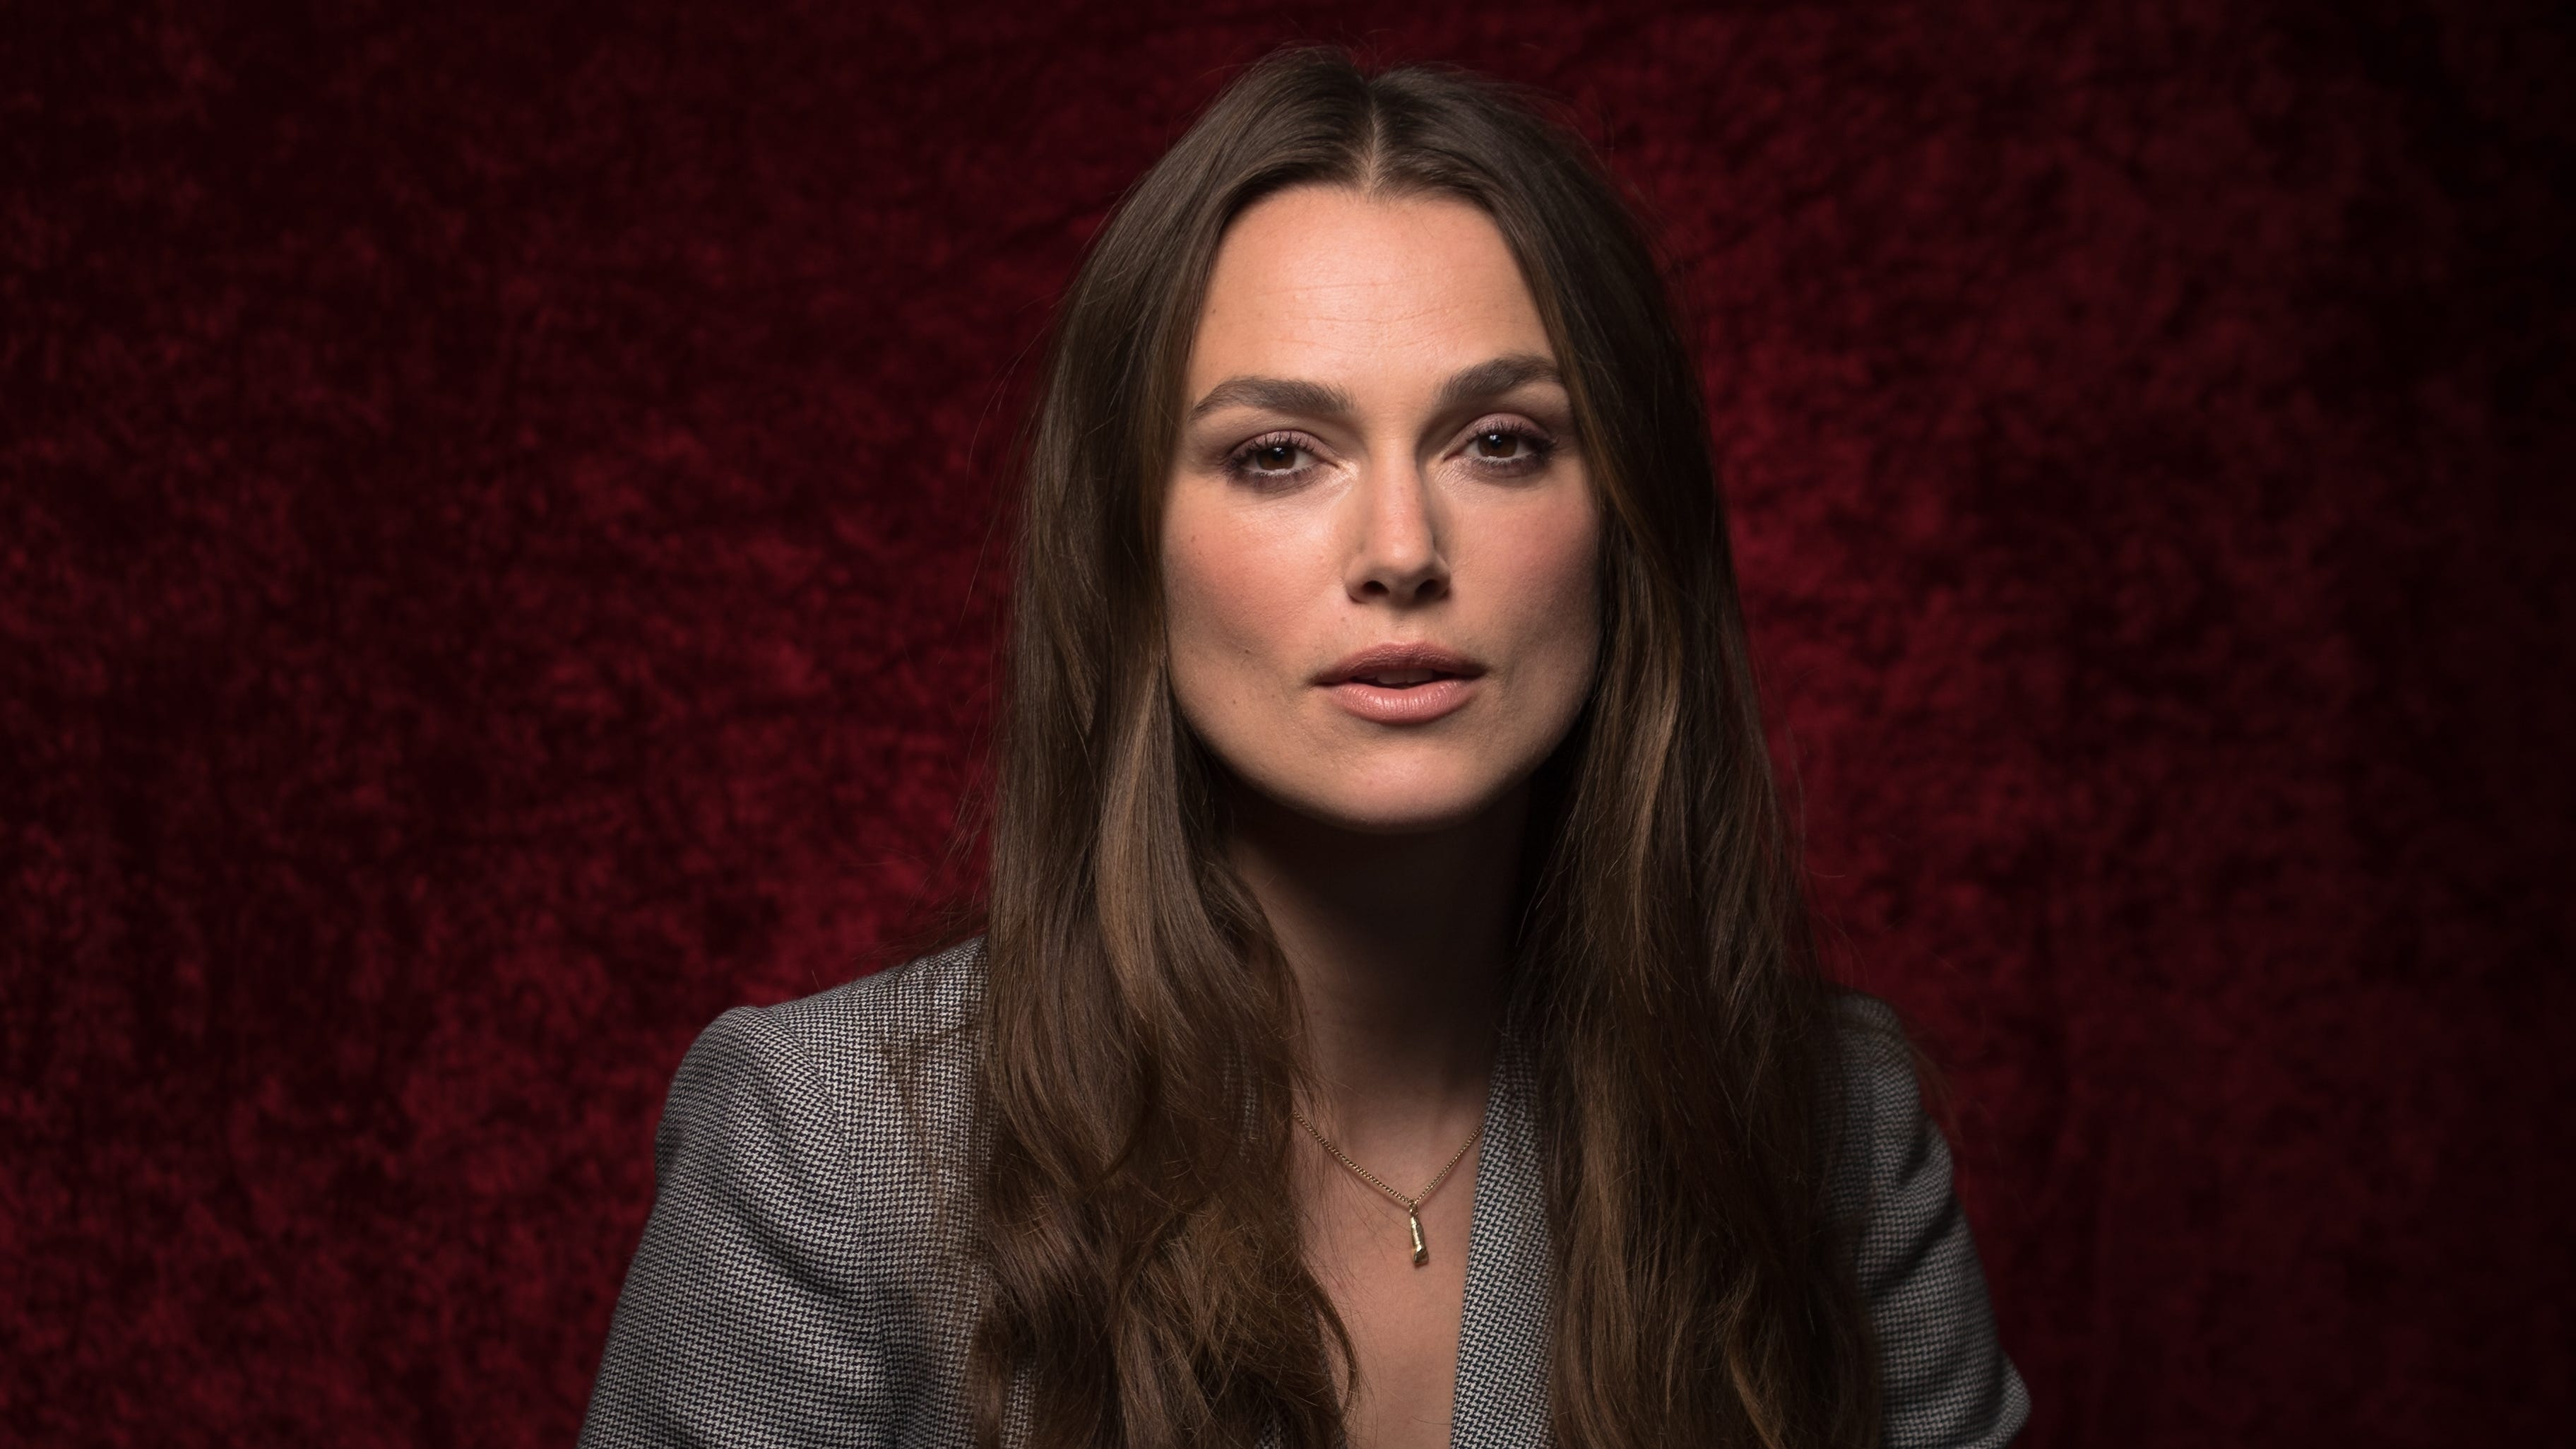 Keira Knightley stars 'Colette' playin feminist icon Sidonie-Gabrielle Colette, who ghost-wrote a semi-autographical novel for her husband at the turn of the 20th century, then decided to fight for creative ownership after it became a success.